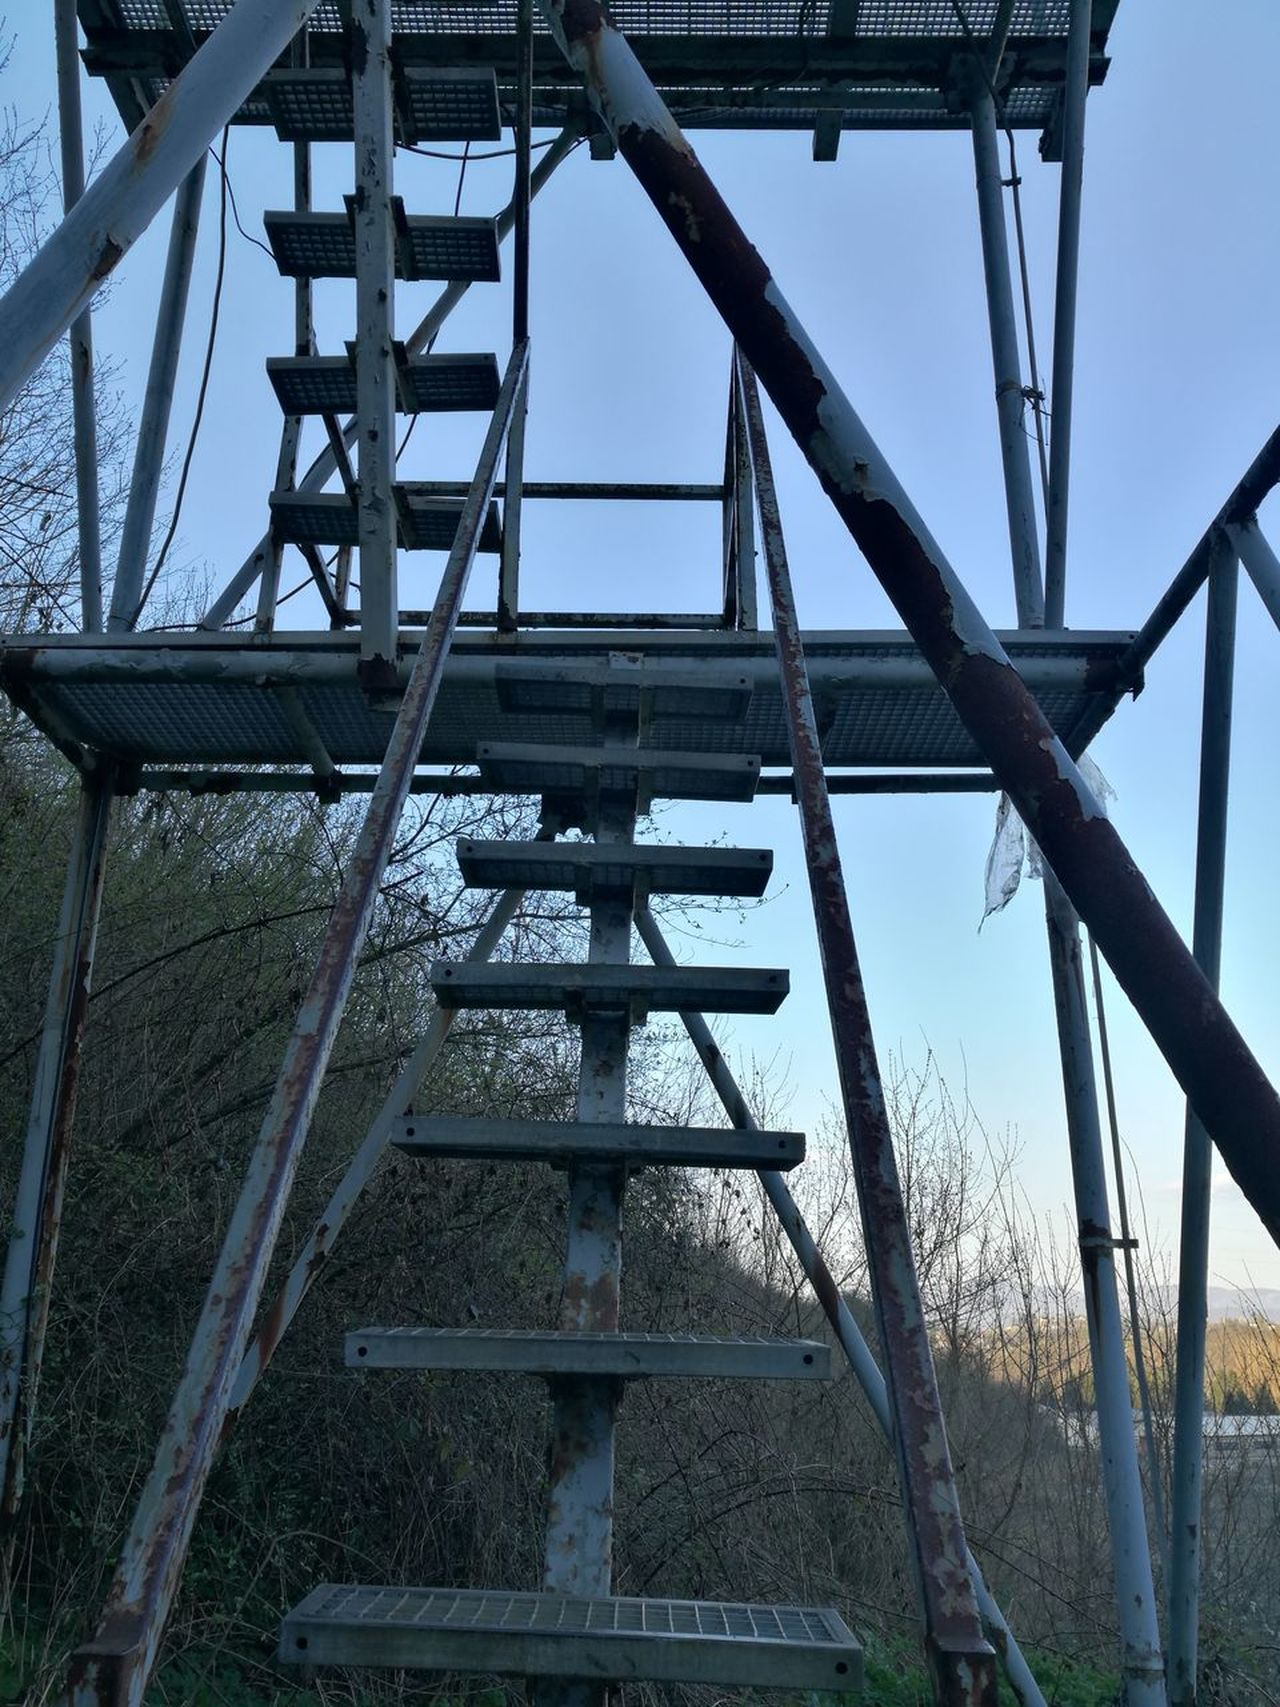 Absolutely safe to climb on :) No People Sky Outdoors Day Huawei P9 Leica Leica Dual Camera Leicaphotography Huaweip9photos HuaweiP9shots Built Structure